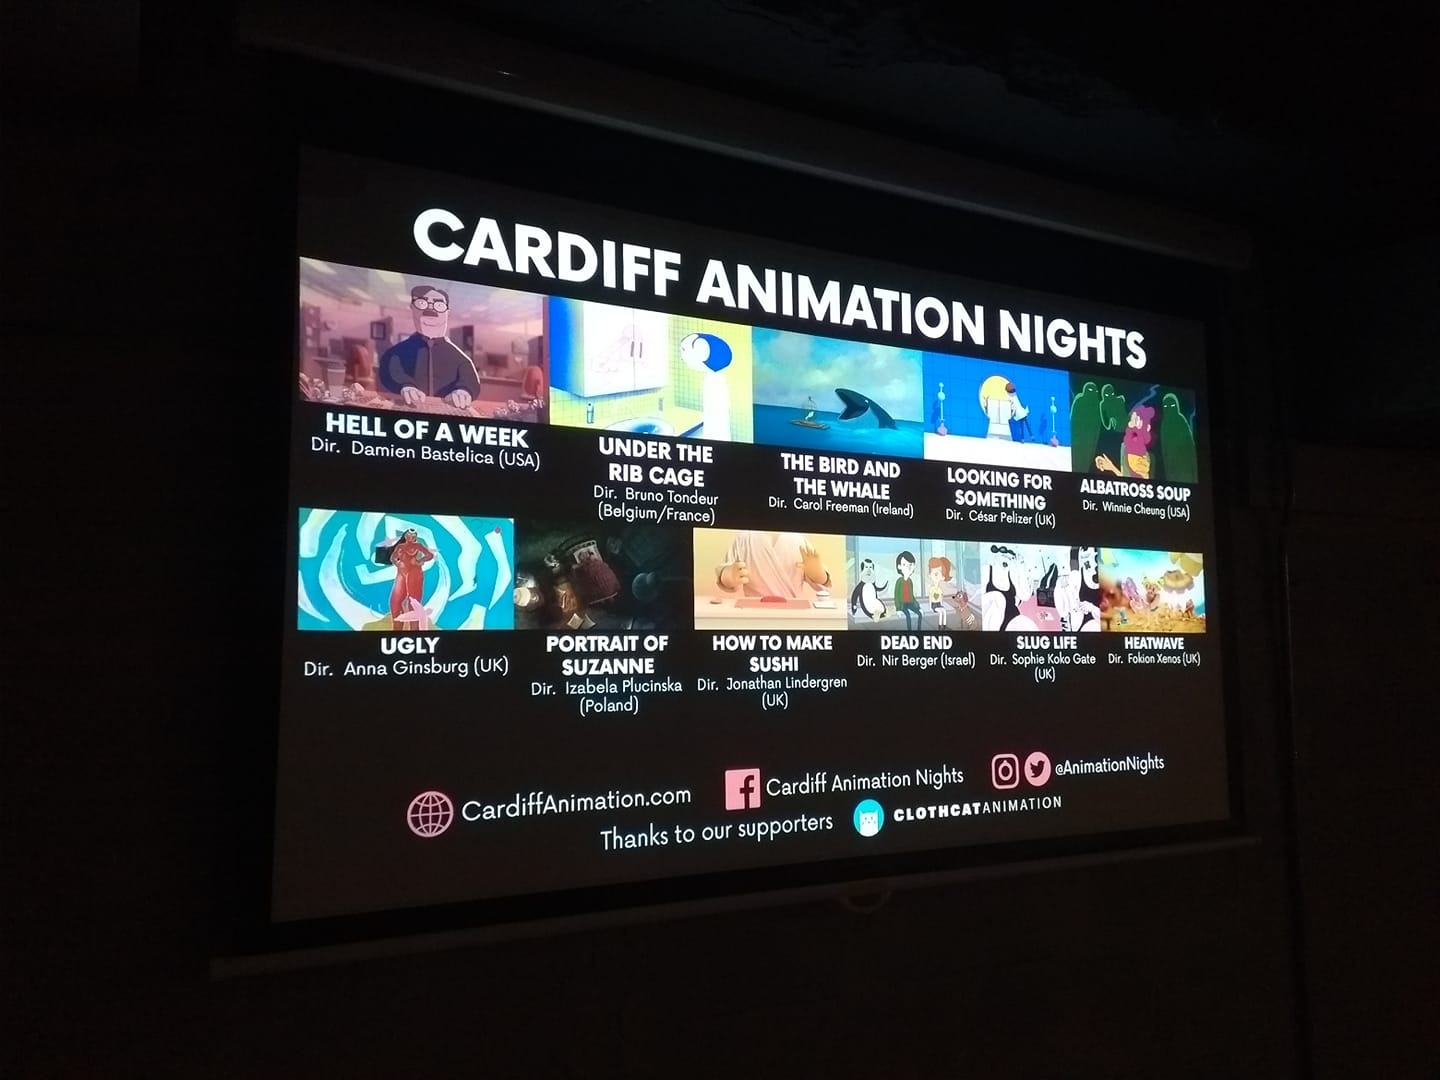 Why Everyone in the South West (And Beyond) Should Attend Cardiff Animation Nights